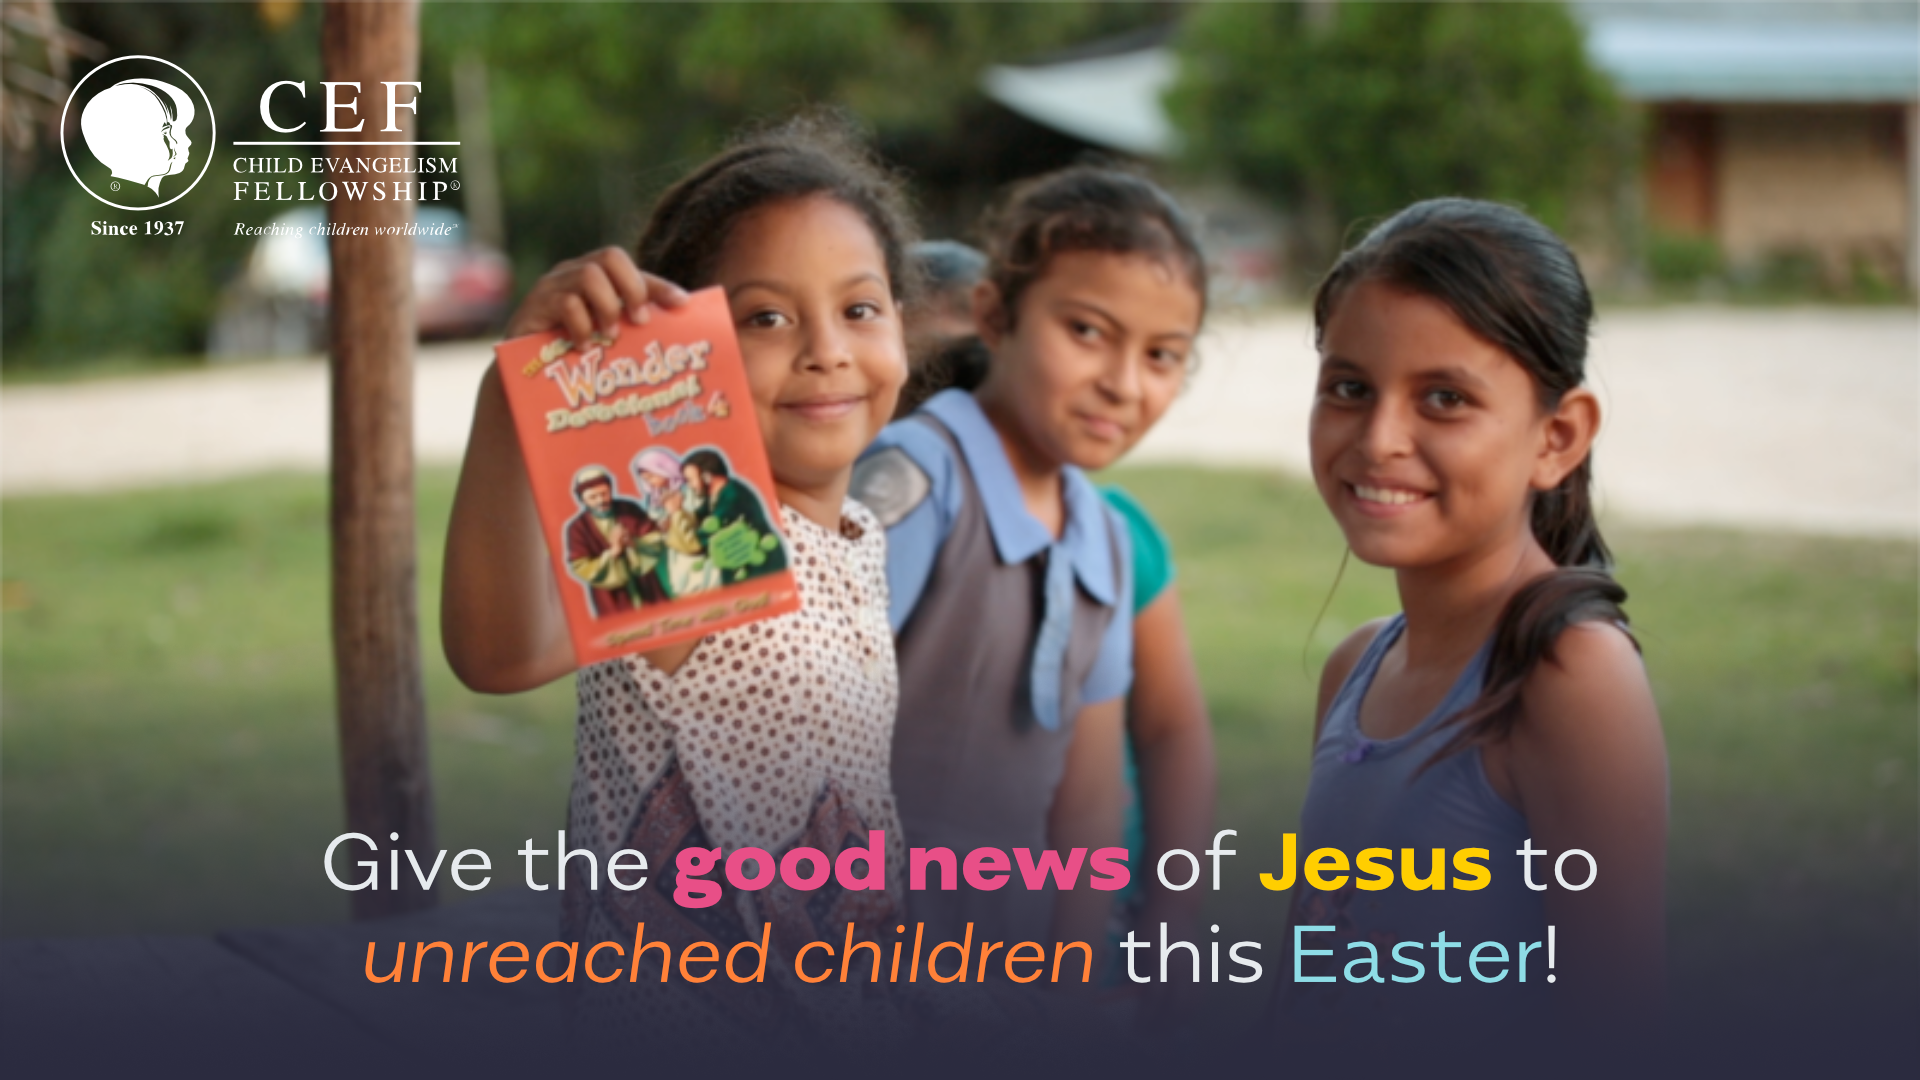 You can give the Gospel to children this Easter!